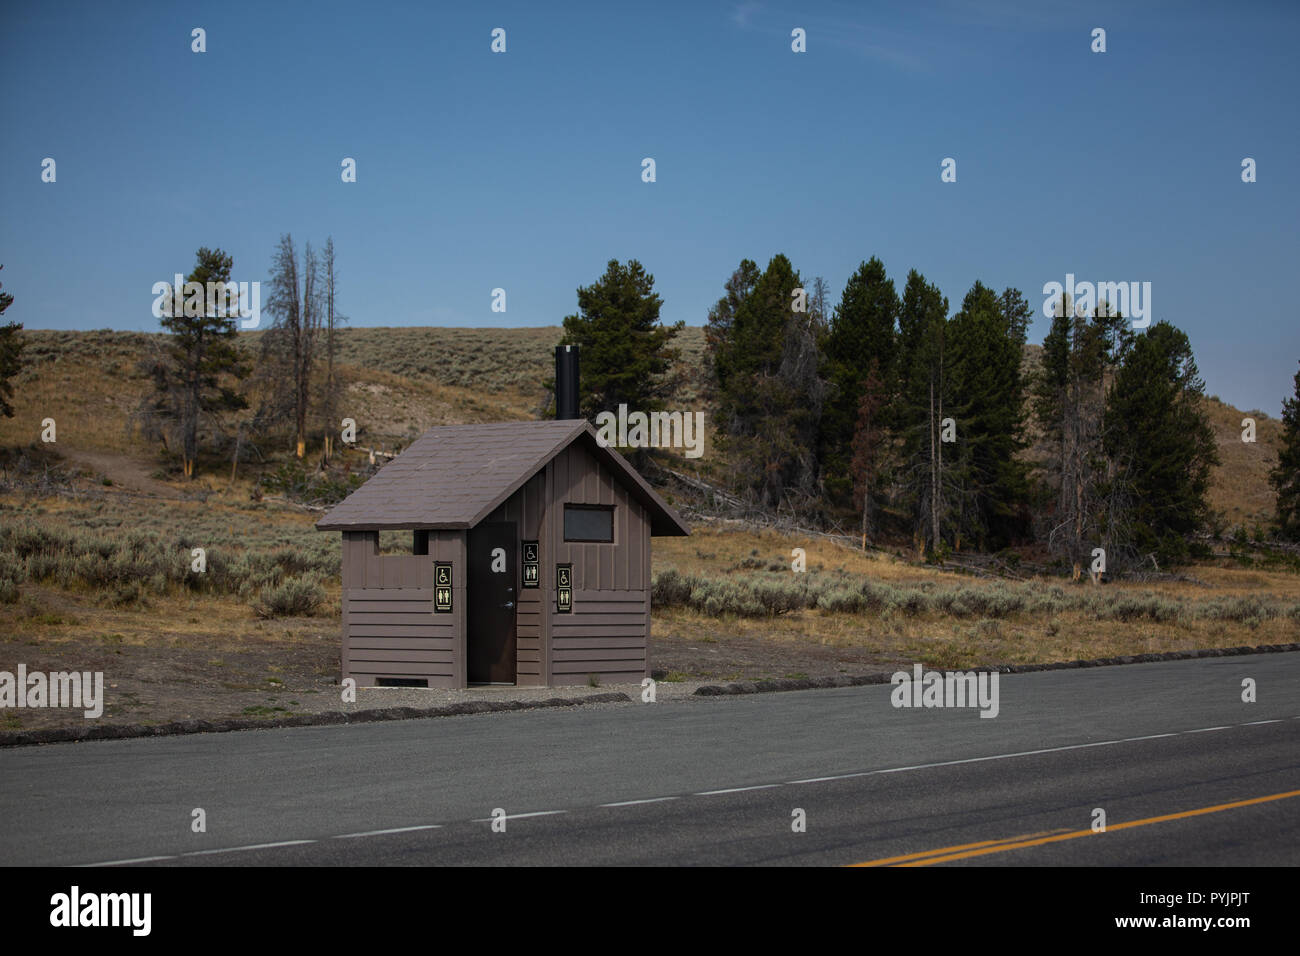 National park roadside facilities with parking area and blue skies. - Stock Image